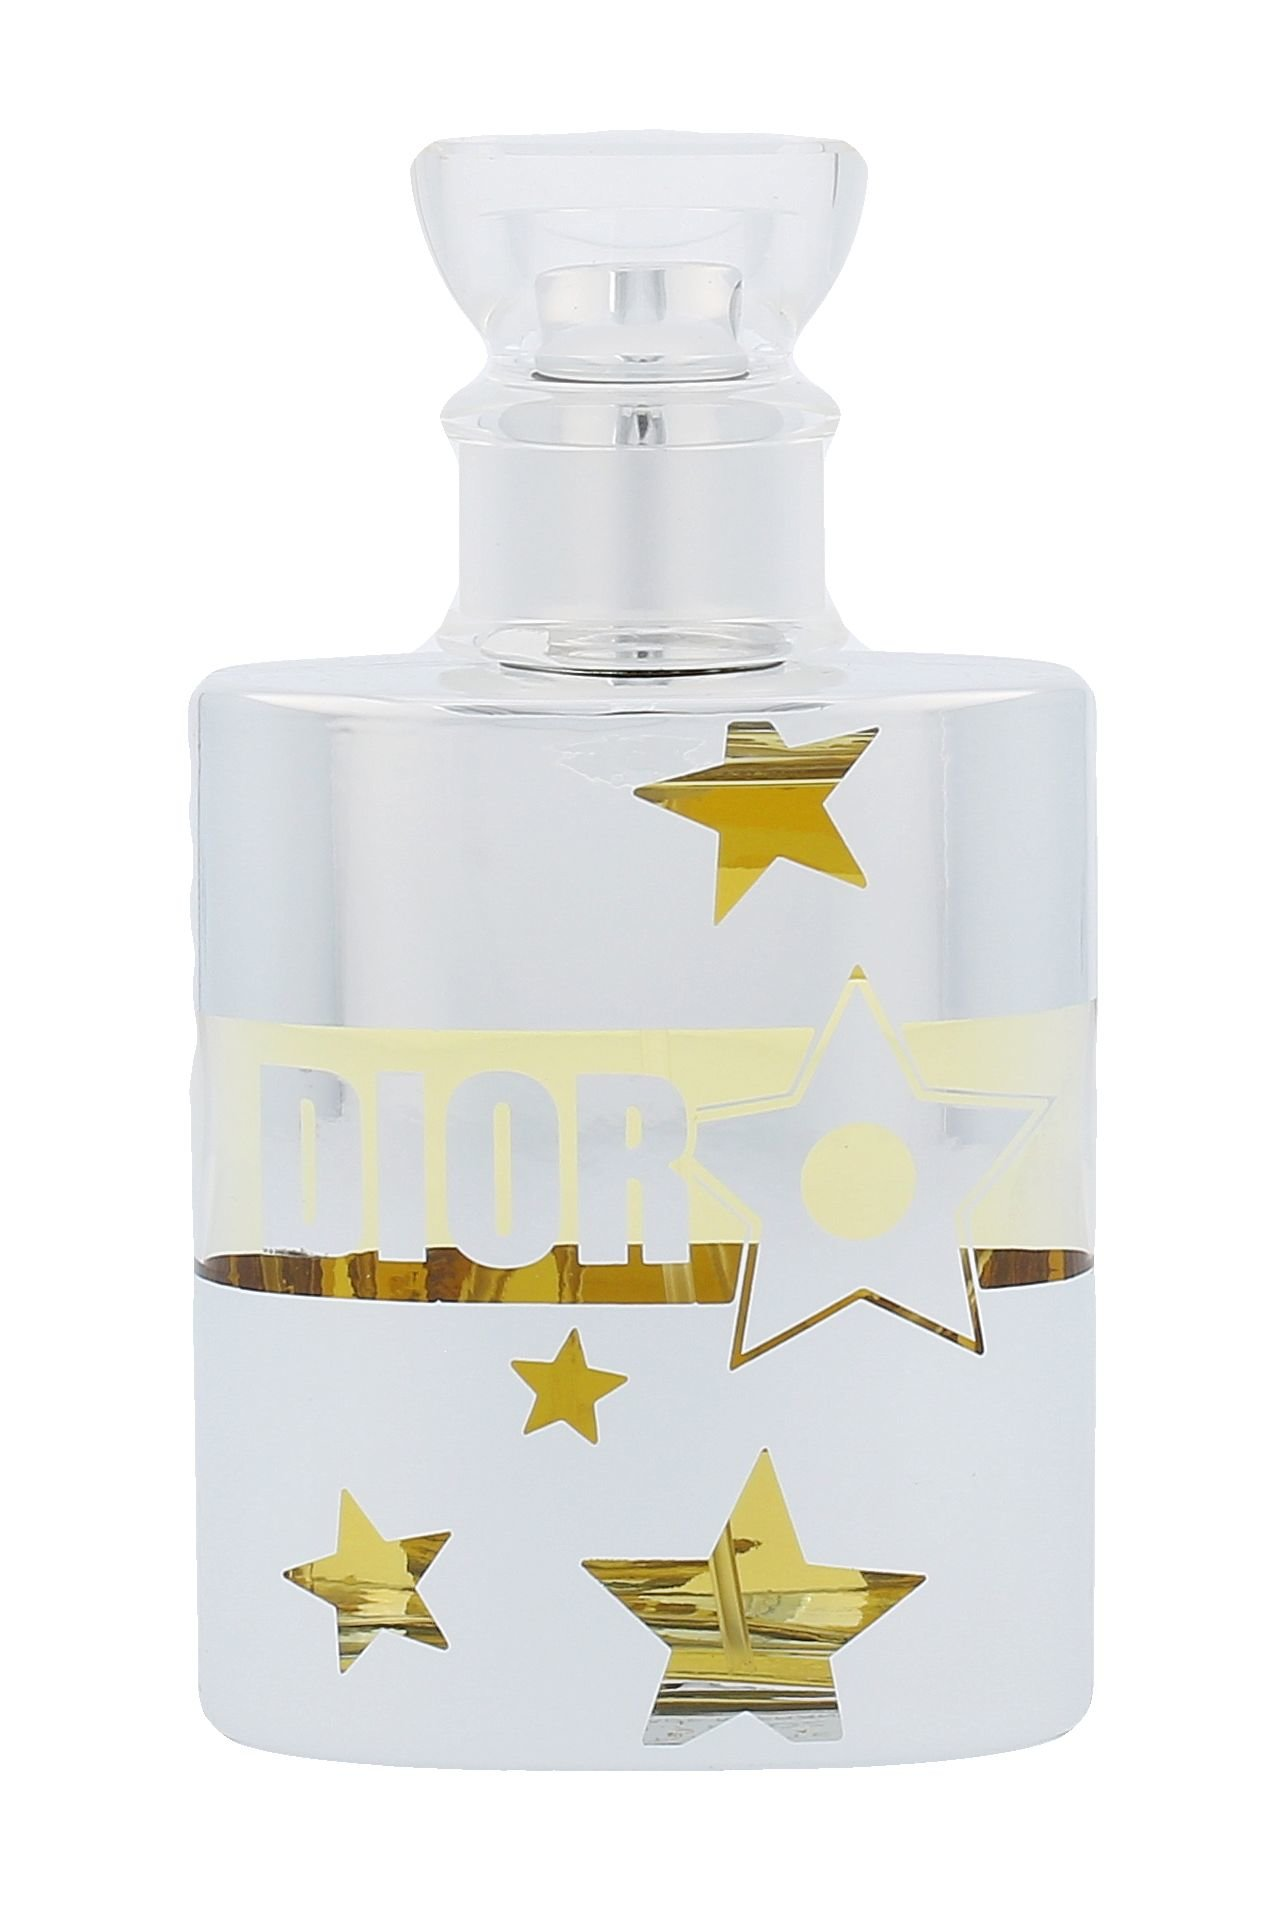 Christian Dior Dior Star EDT 50ml